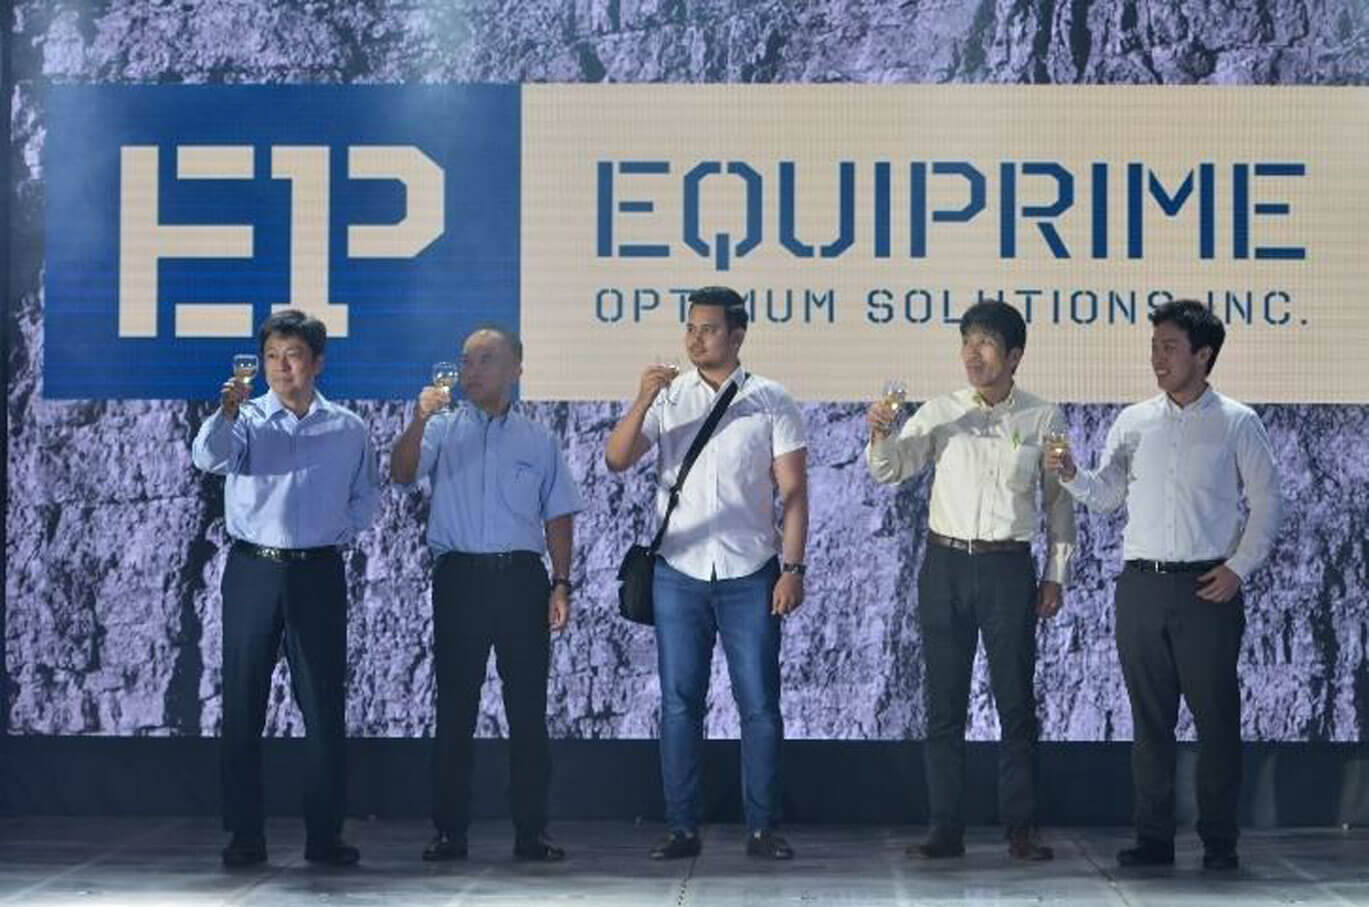 Equiprime